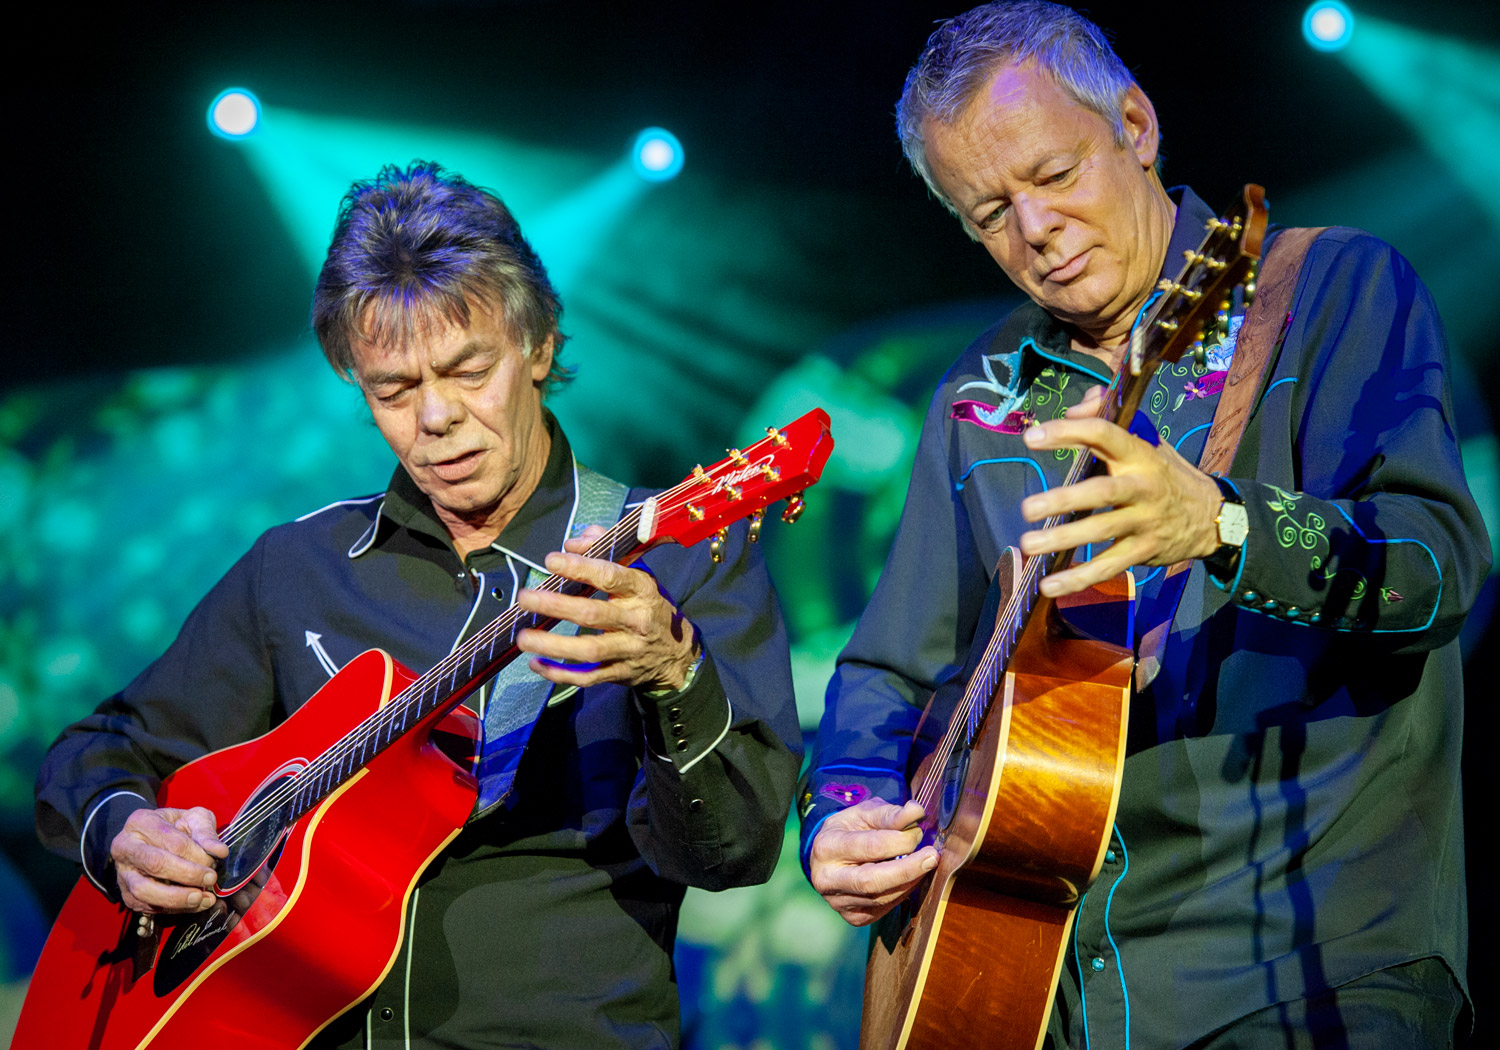 Phil & Tommy Emmanuel on their 50th Anniversary tour. Photograph taken in Adelaide, South Australia.